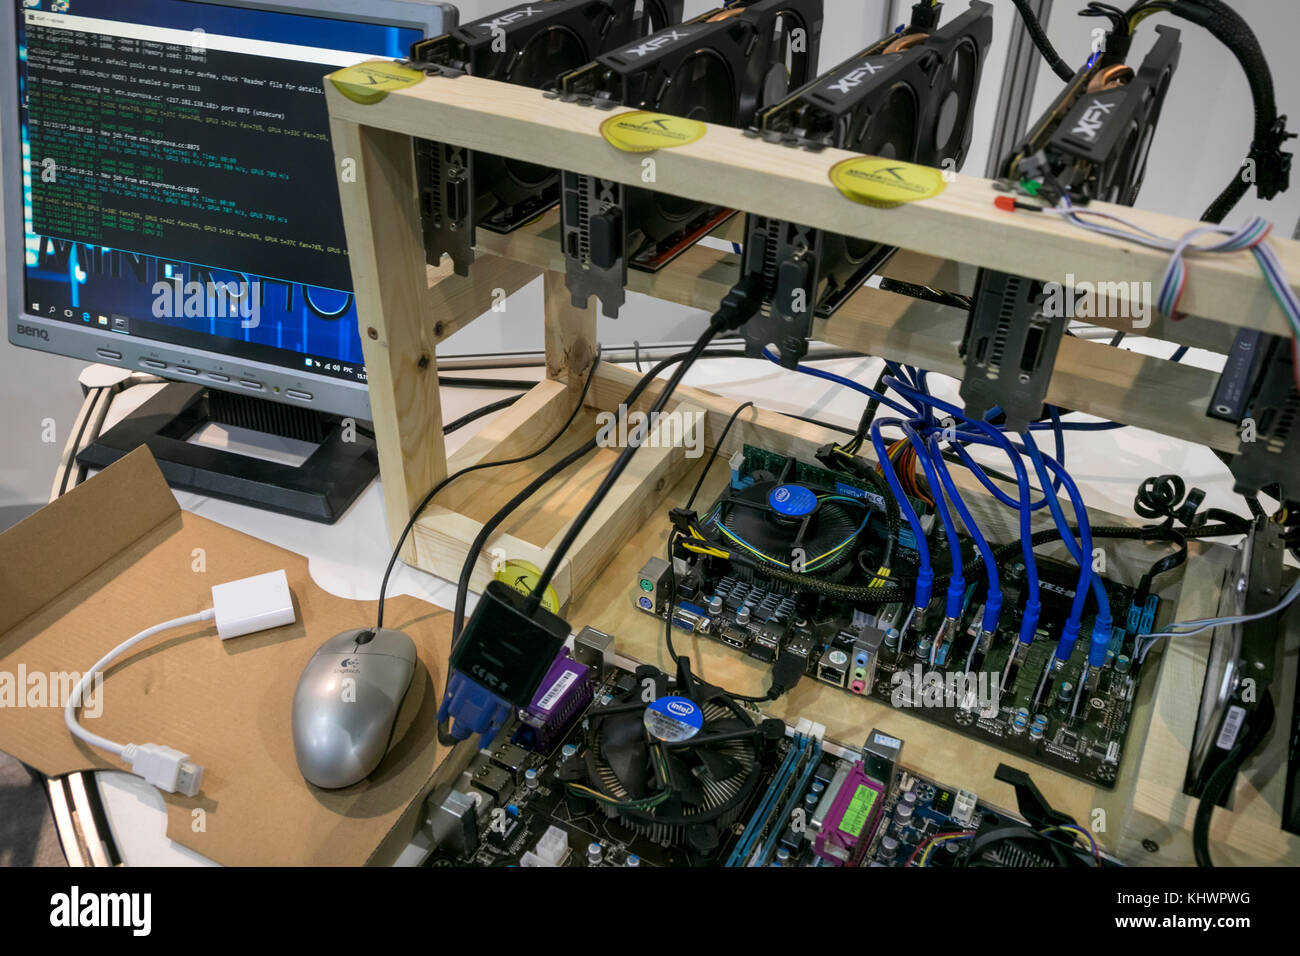 Mining station for crypto currency production on Blockchain conference - Stock Image